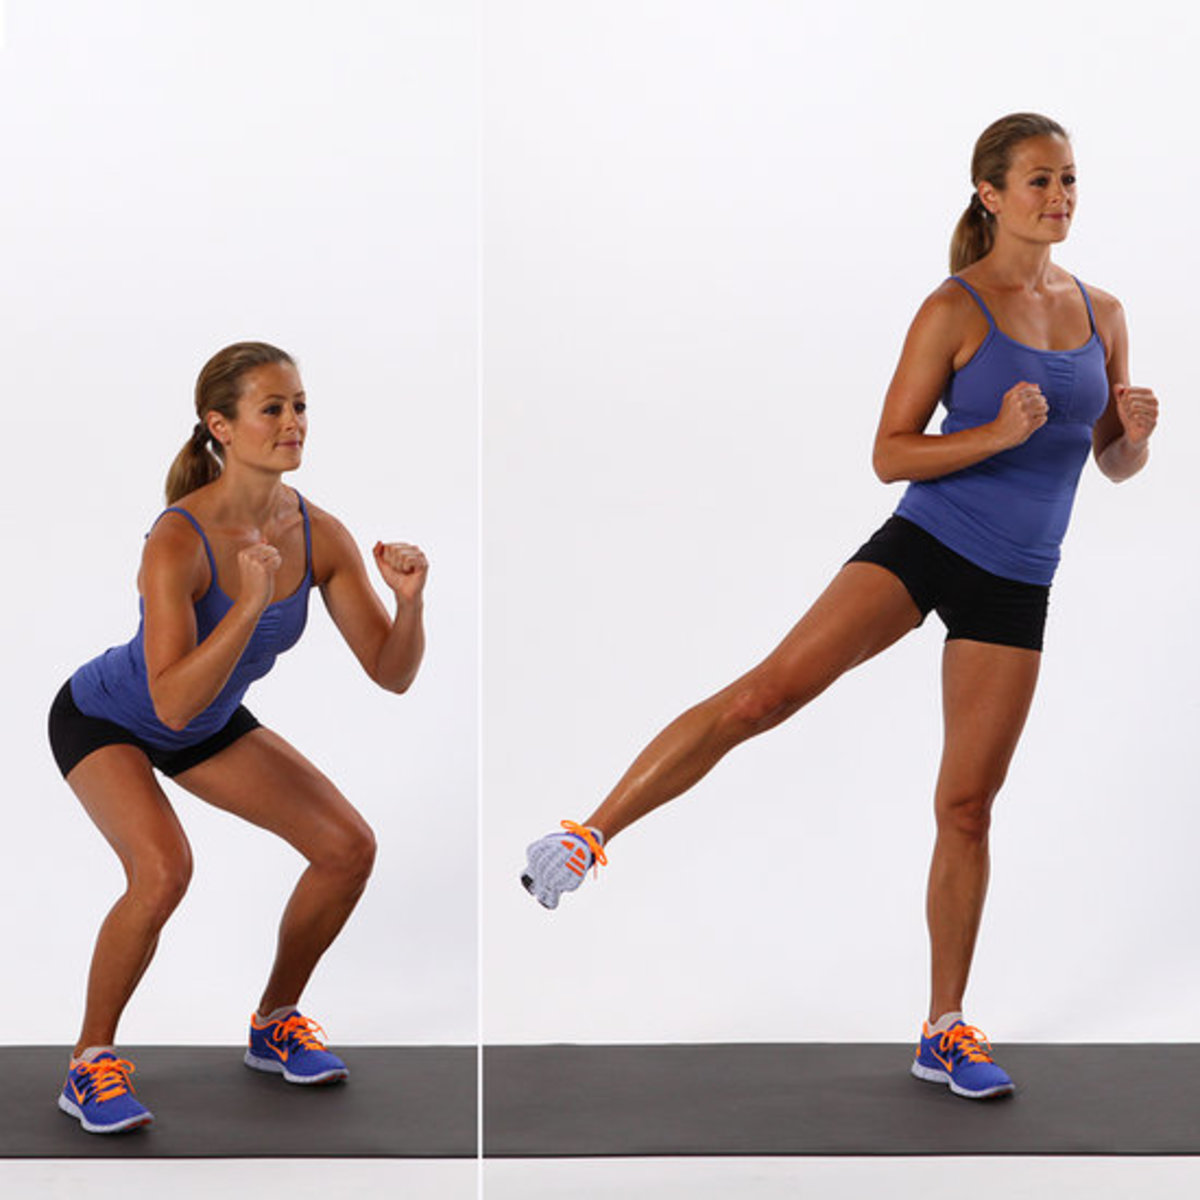 pretty brunette performing a squat and a leg lift both in perfect form with the back straight and shoulders back